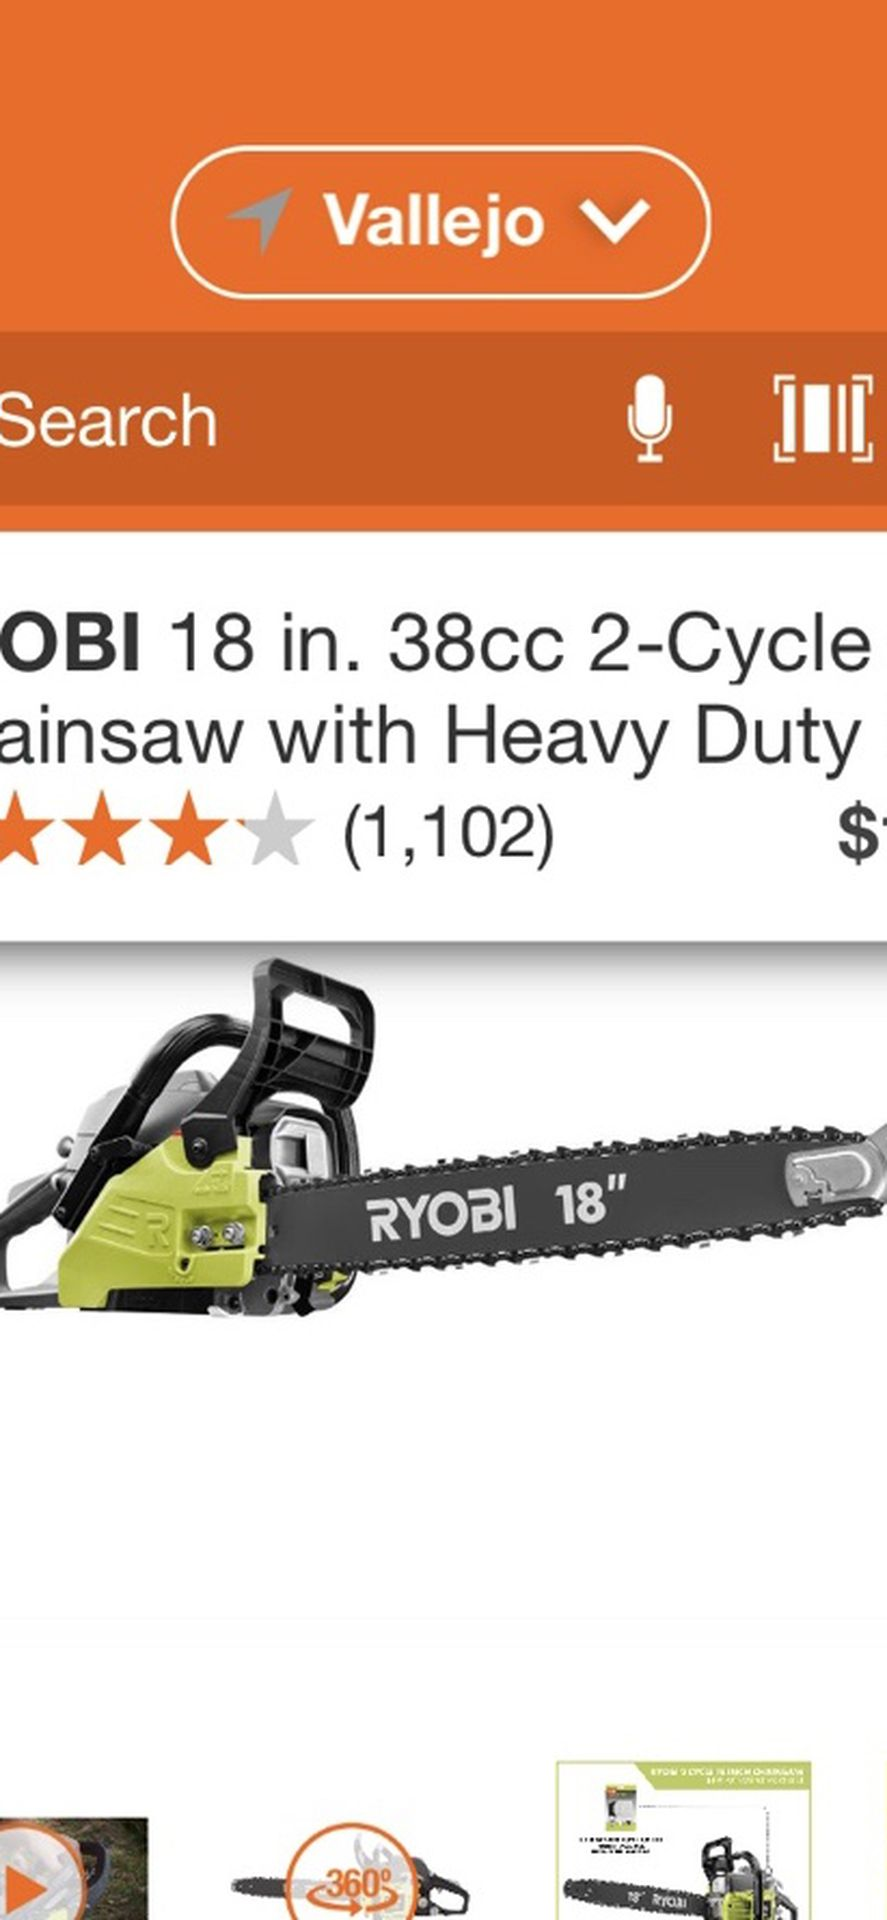 RYOBI 18 INCHES CHAINSAW 2 CICLE GAS WITH HEAVY DUTY CASE BRAND NEW